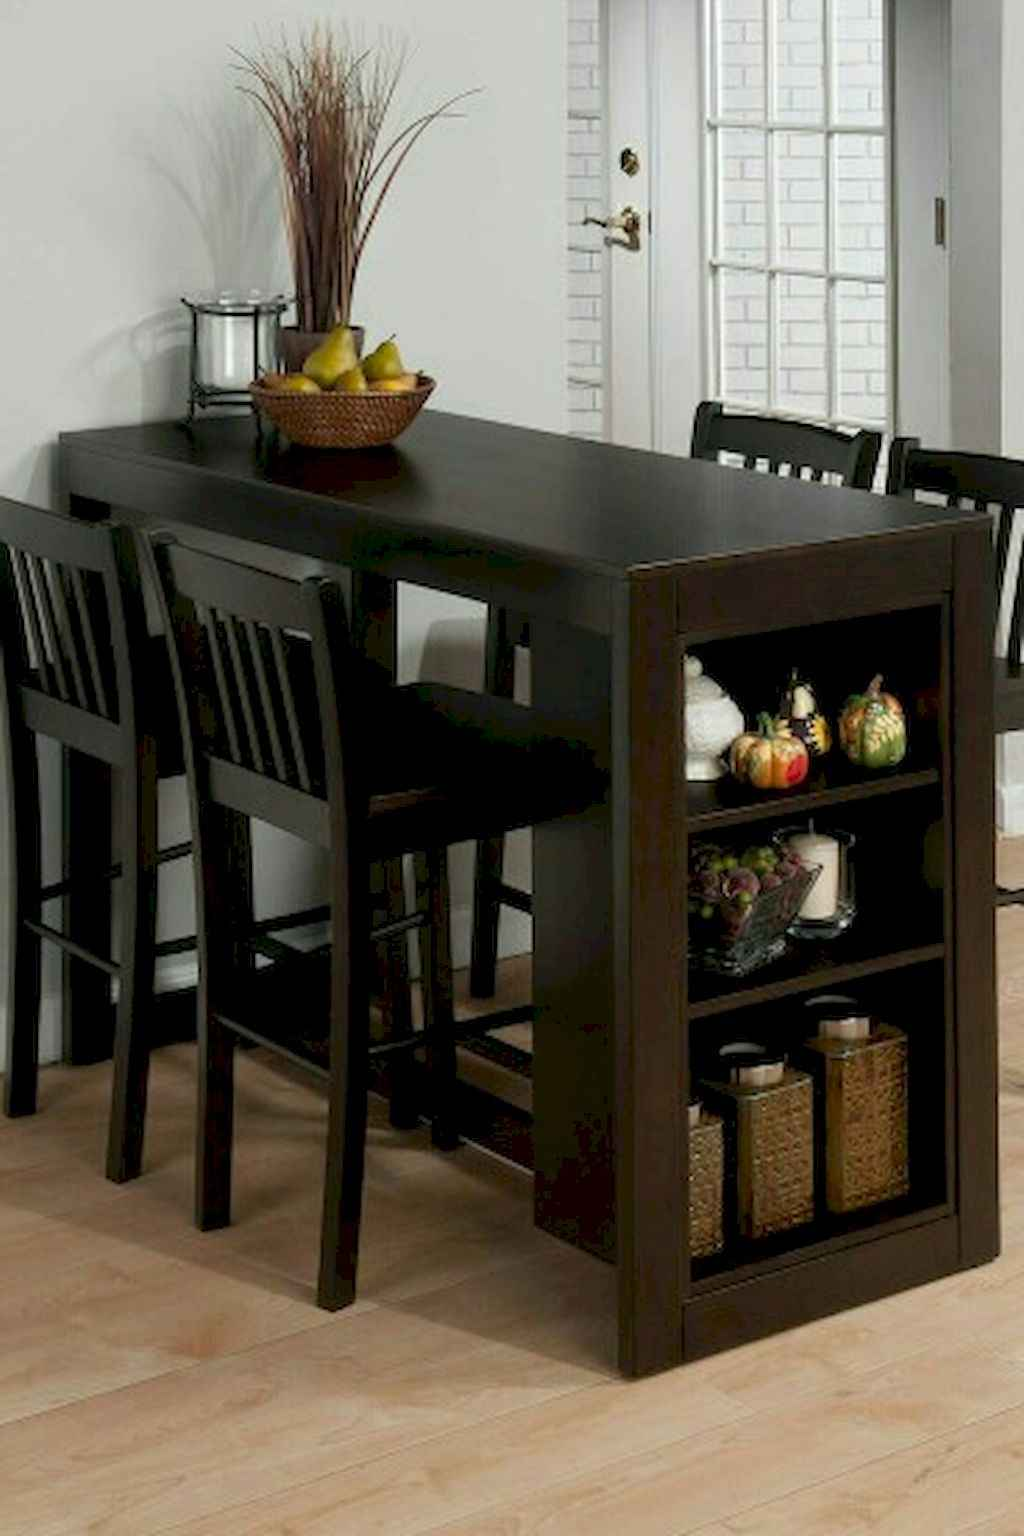 Small dining room table and chair ideas on a budget (25)